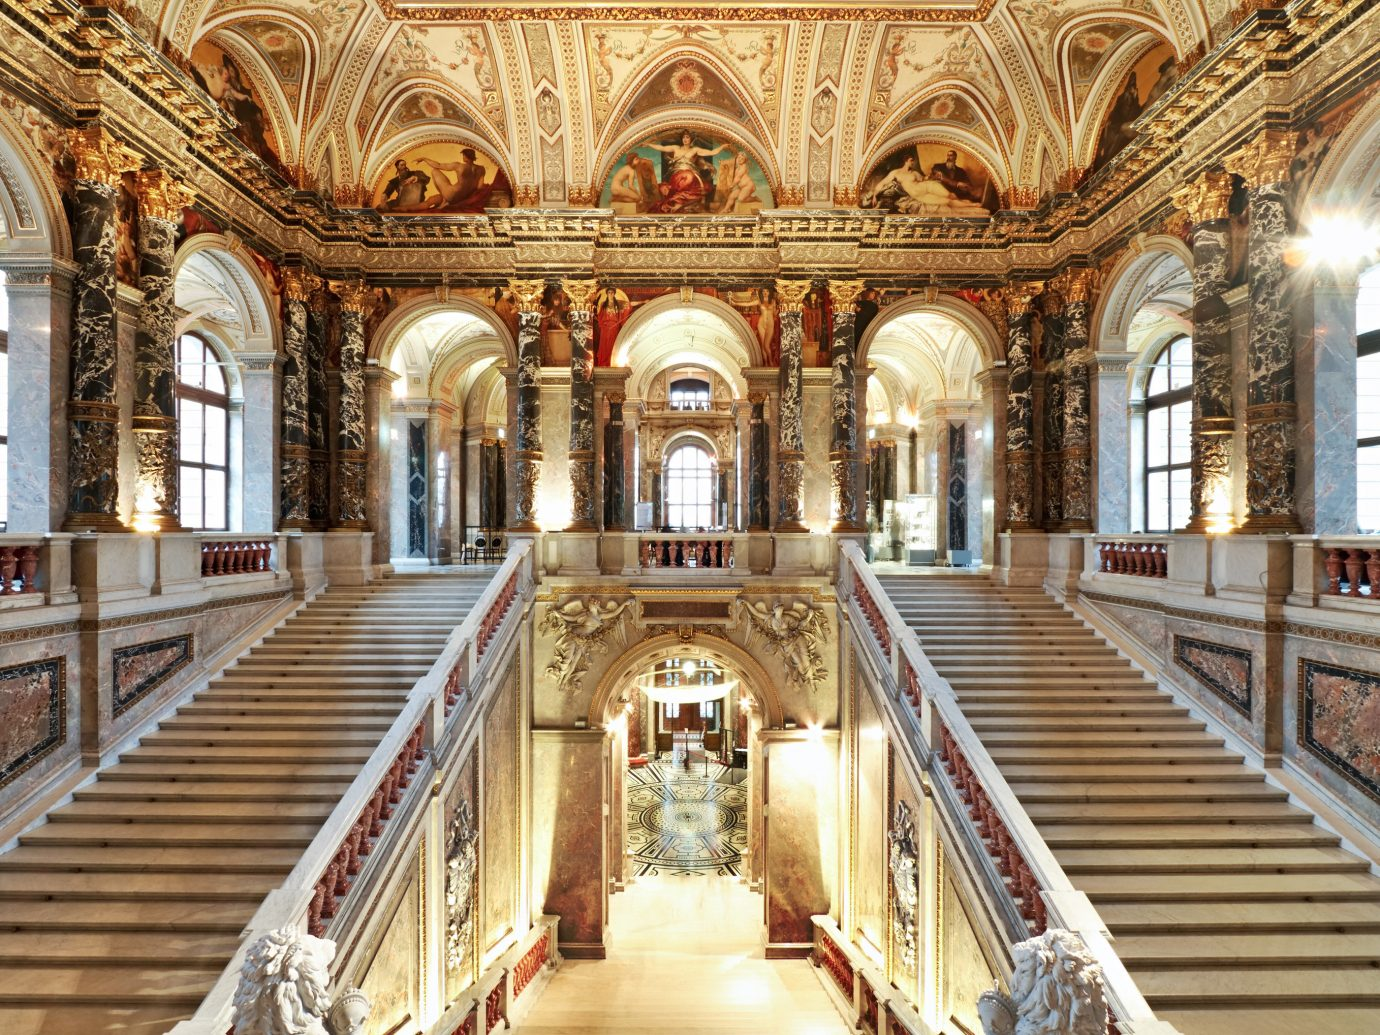 entrance and staircase at Kunsthistorisches Museum